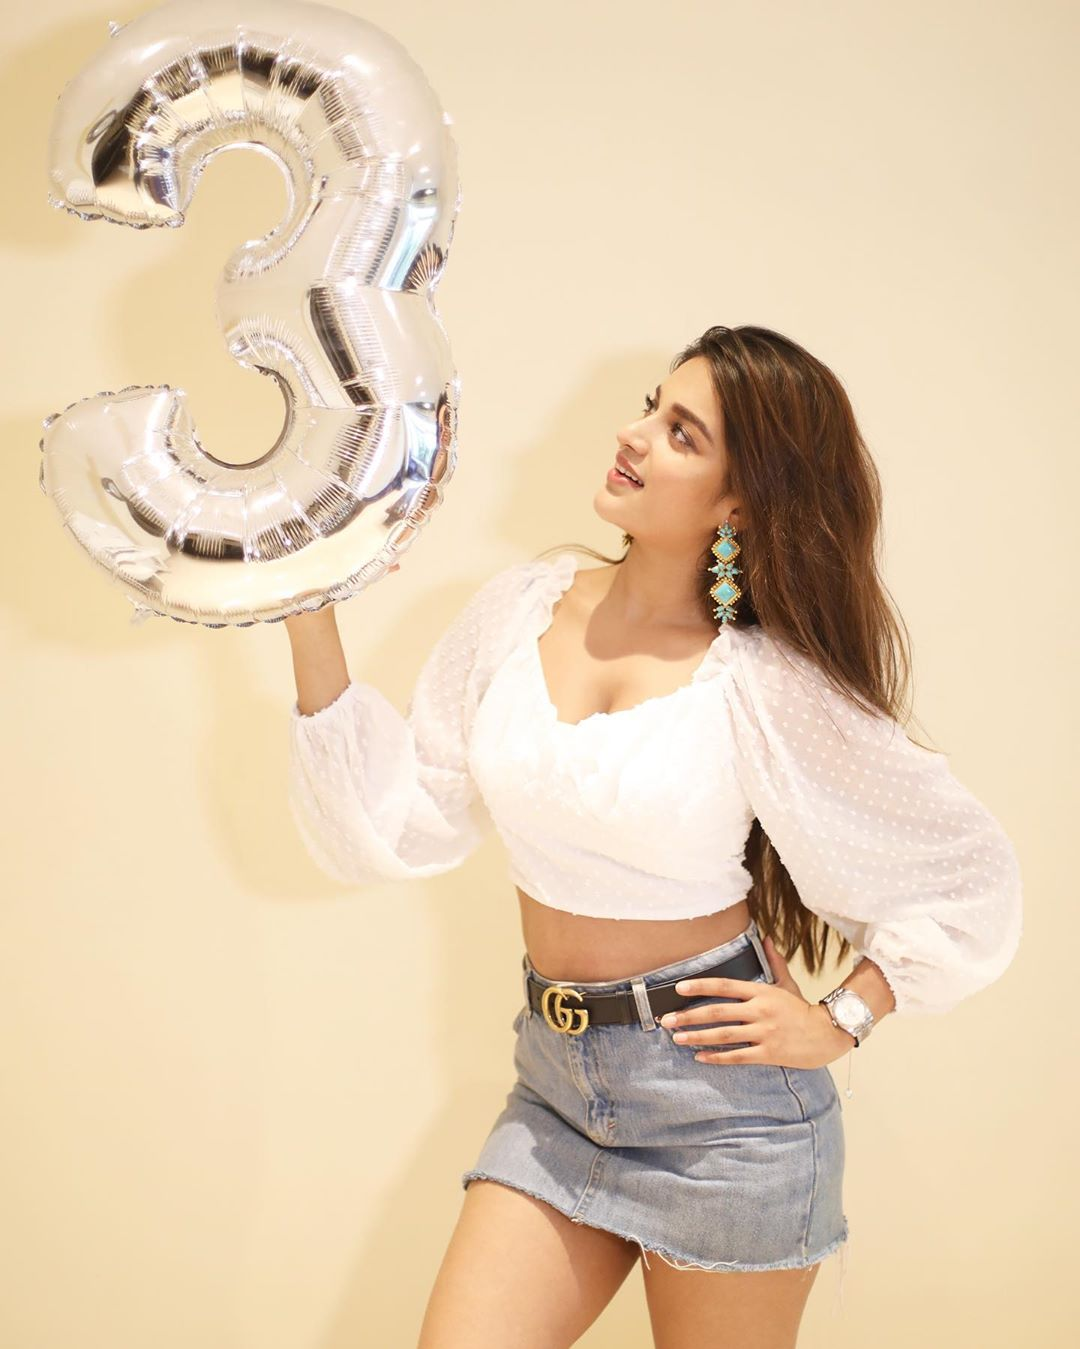 Niddhi Agerwal thanks her fans for 3 Million followers